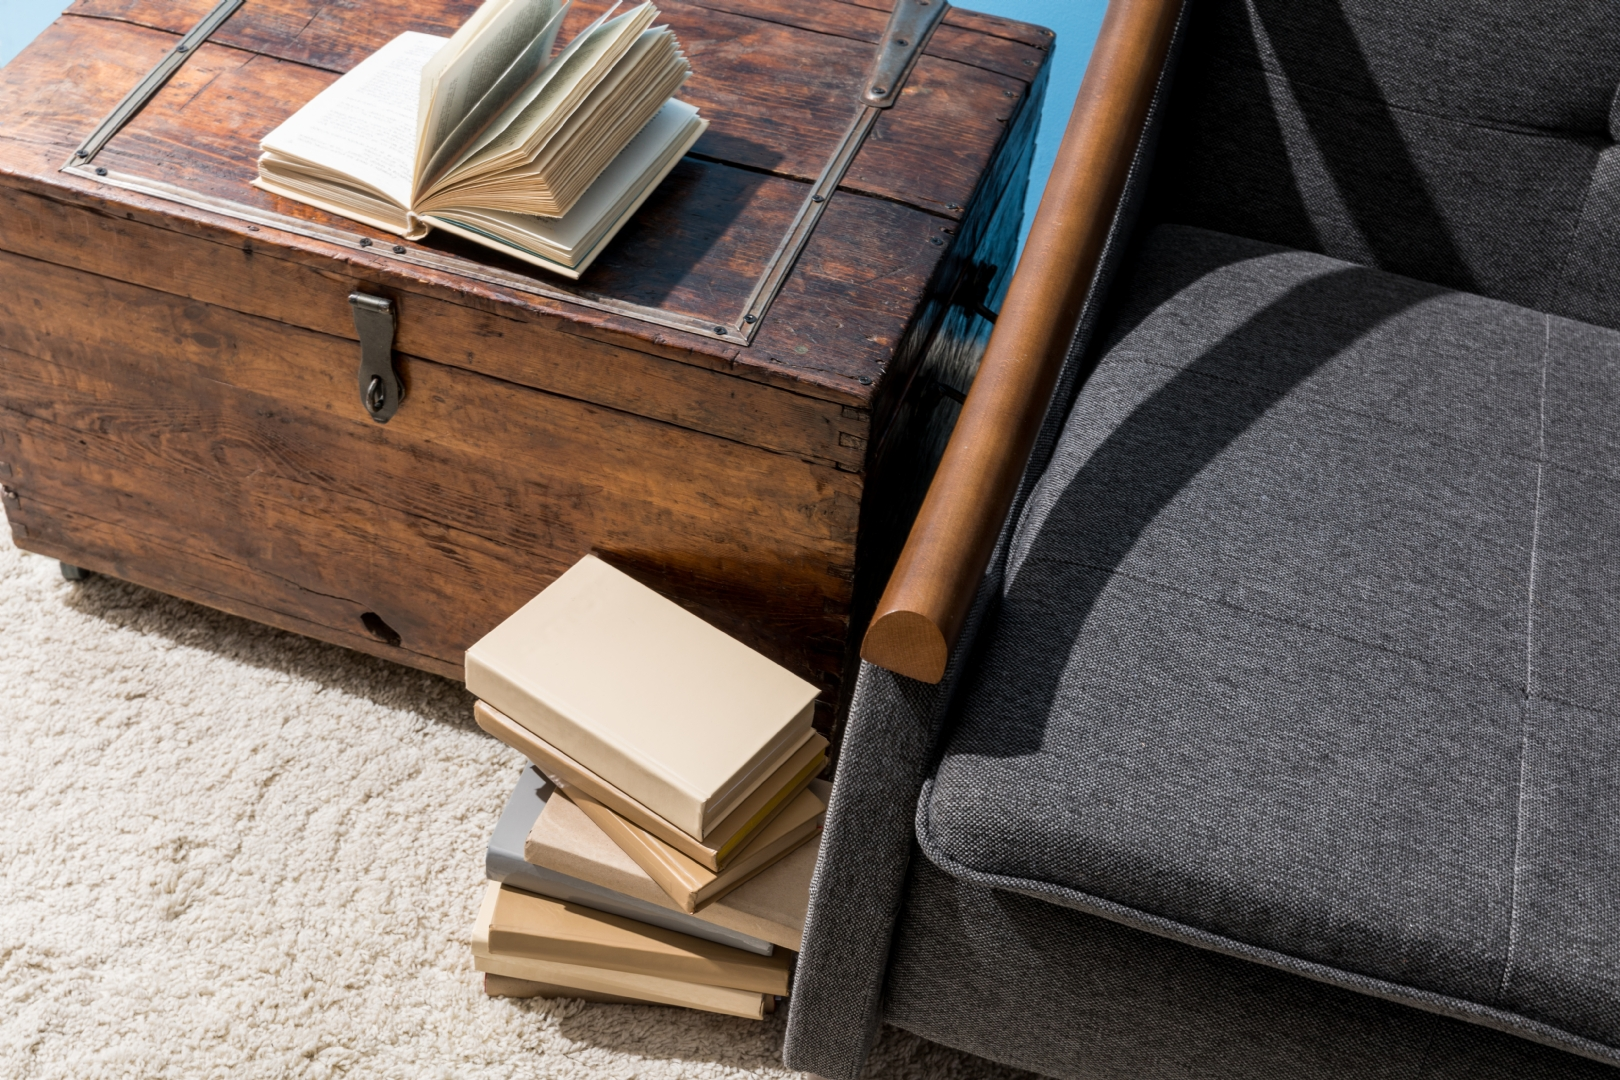 How to restore and finish an old piece of furniture: a useful guide